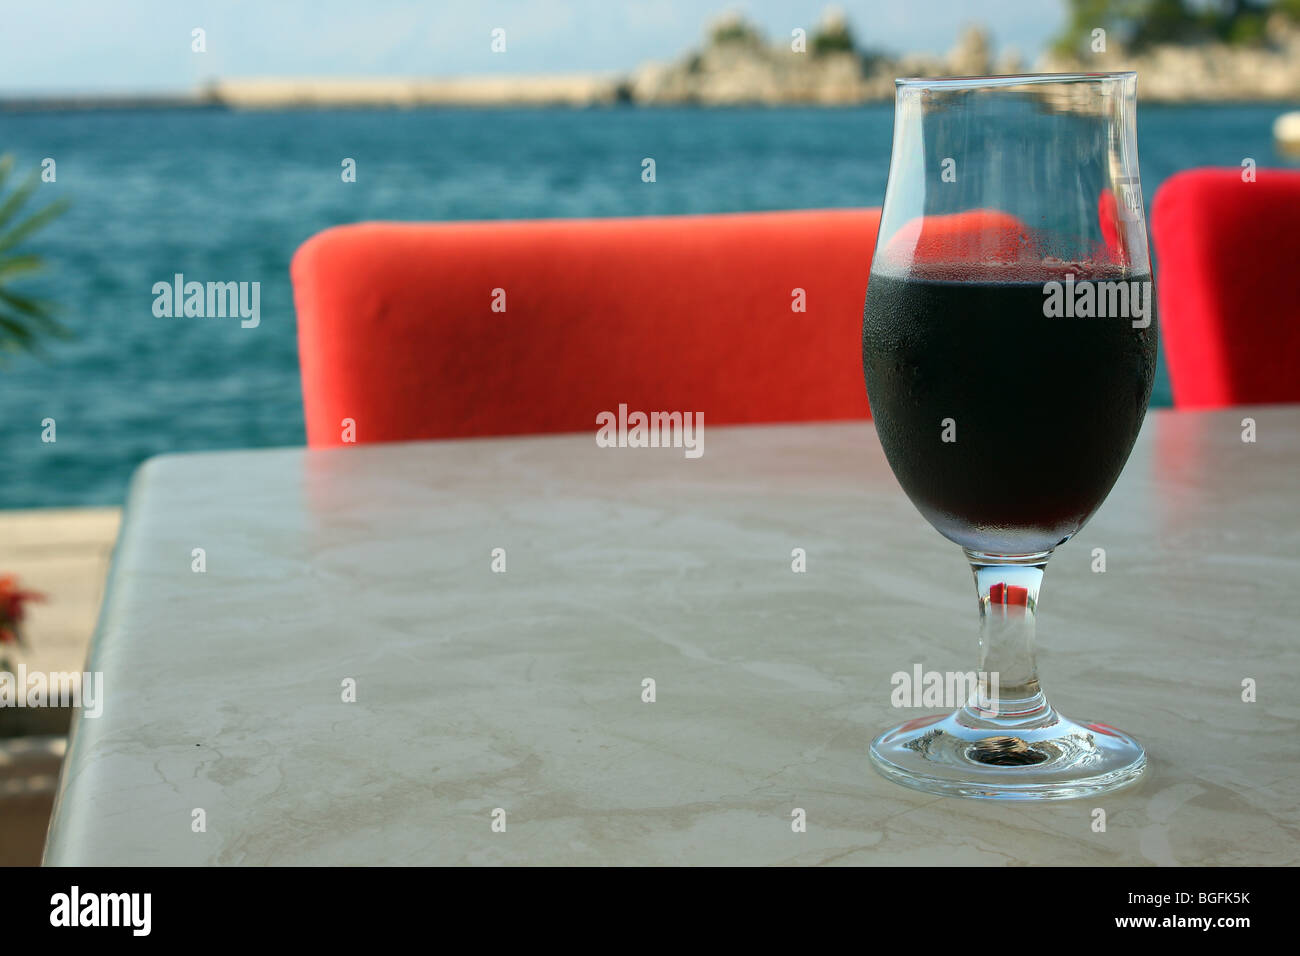 Verre de vin rouge sur la table Photo Stock